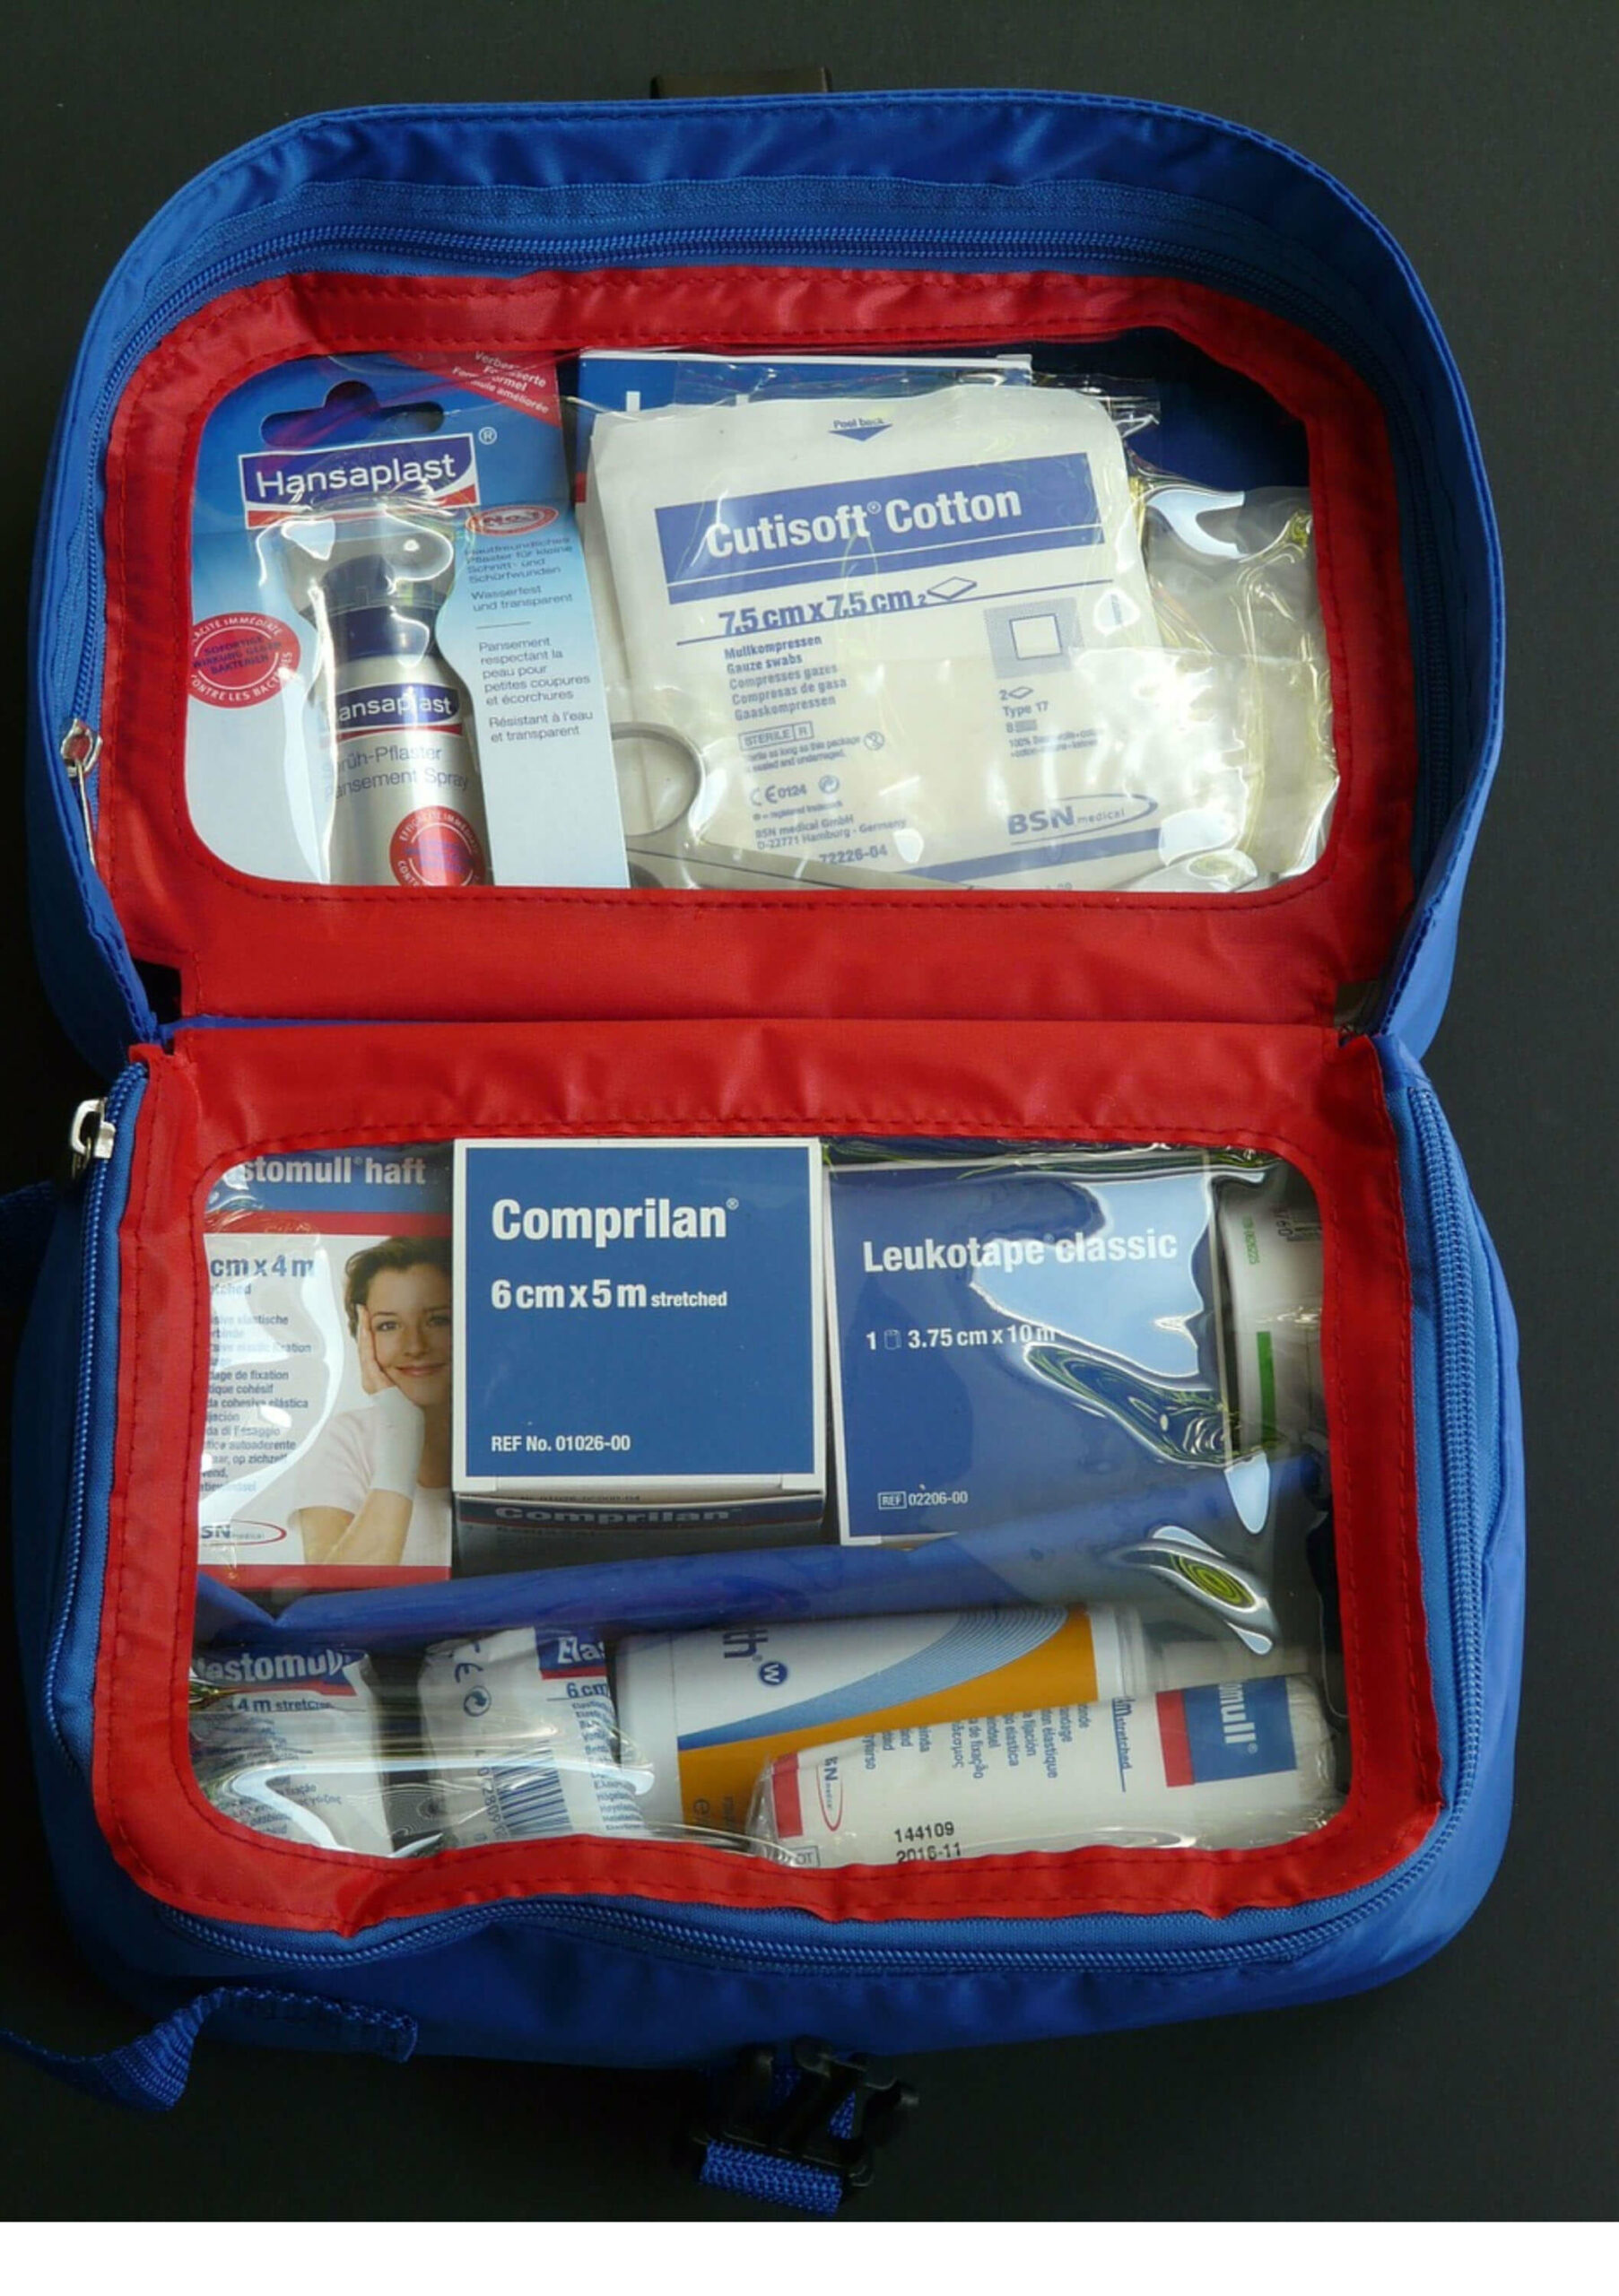 Image of a first aid kit.